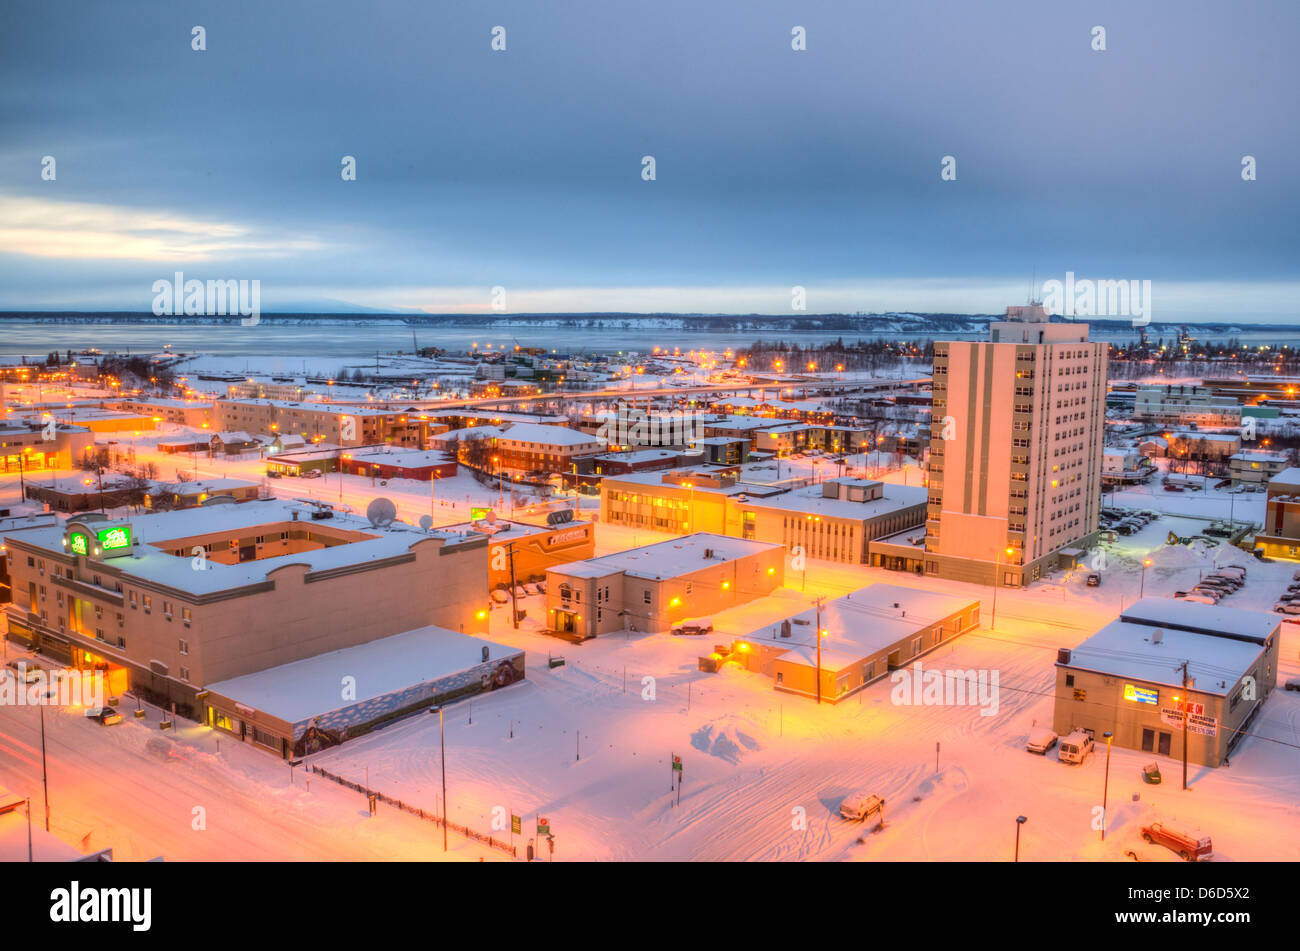 Anchorage at Twilight - Stock Image